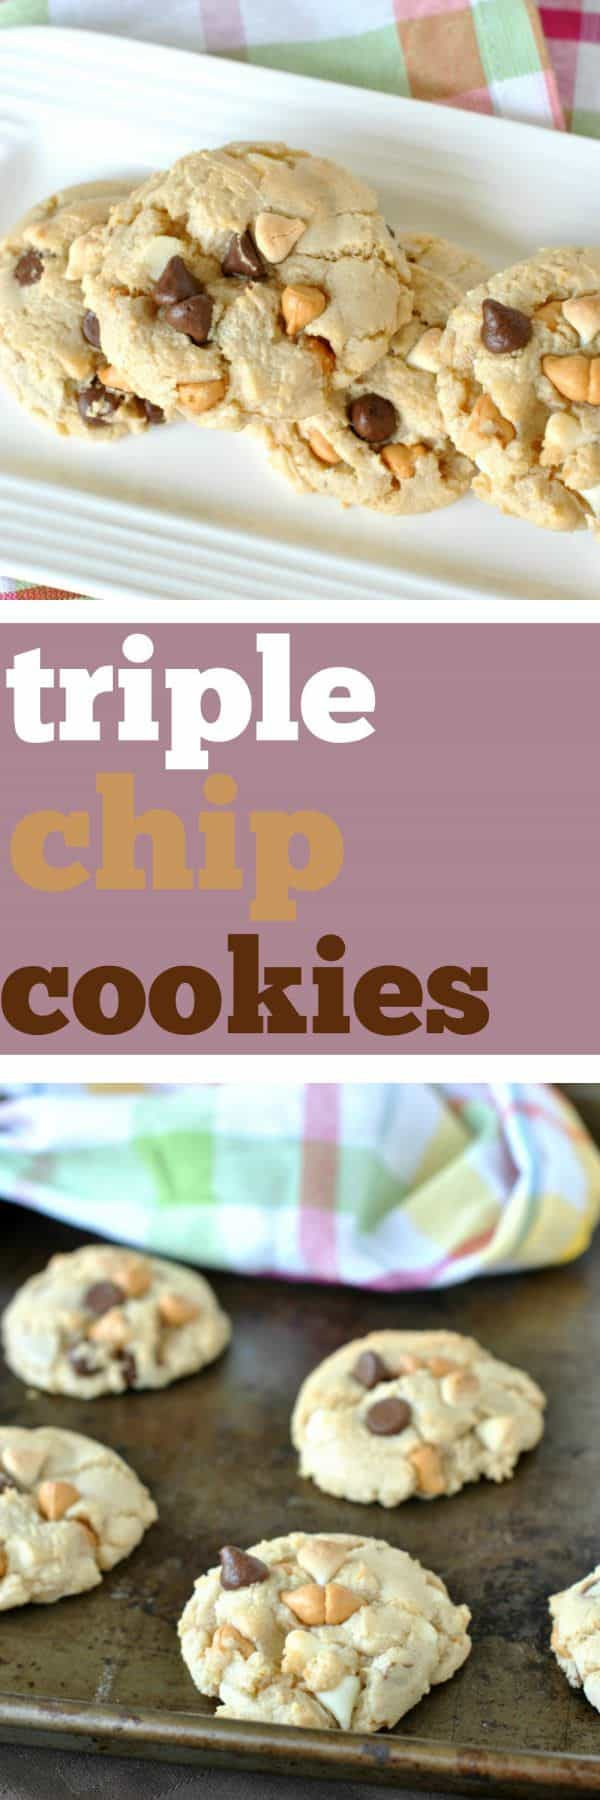 Chewy Triple Chip Cookies filled with butterscotch, white chocolate and semi-sweet chocolate morsels! Perfect for school lunches, afternoon snacks and dessert. Keeps well in freezer too!